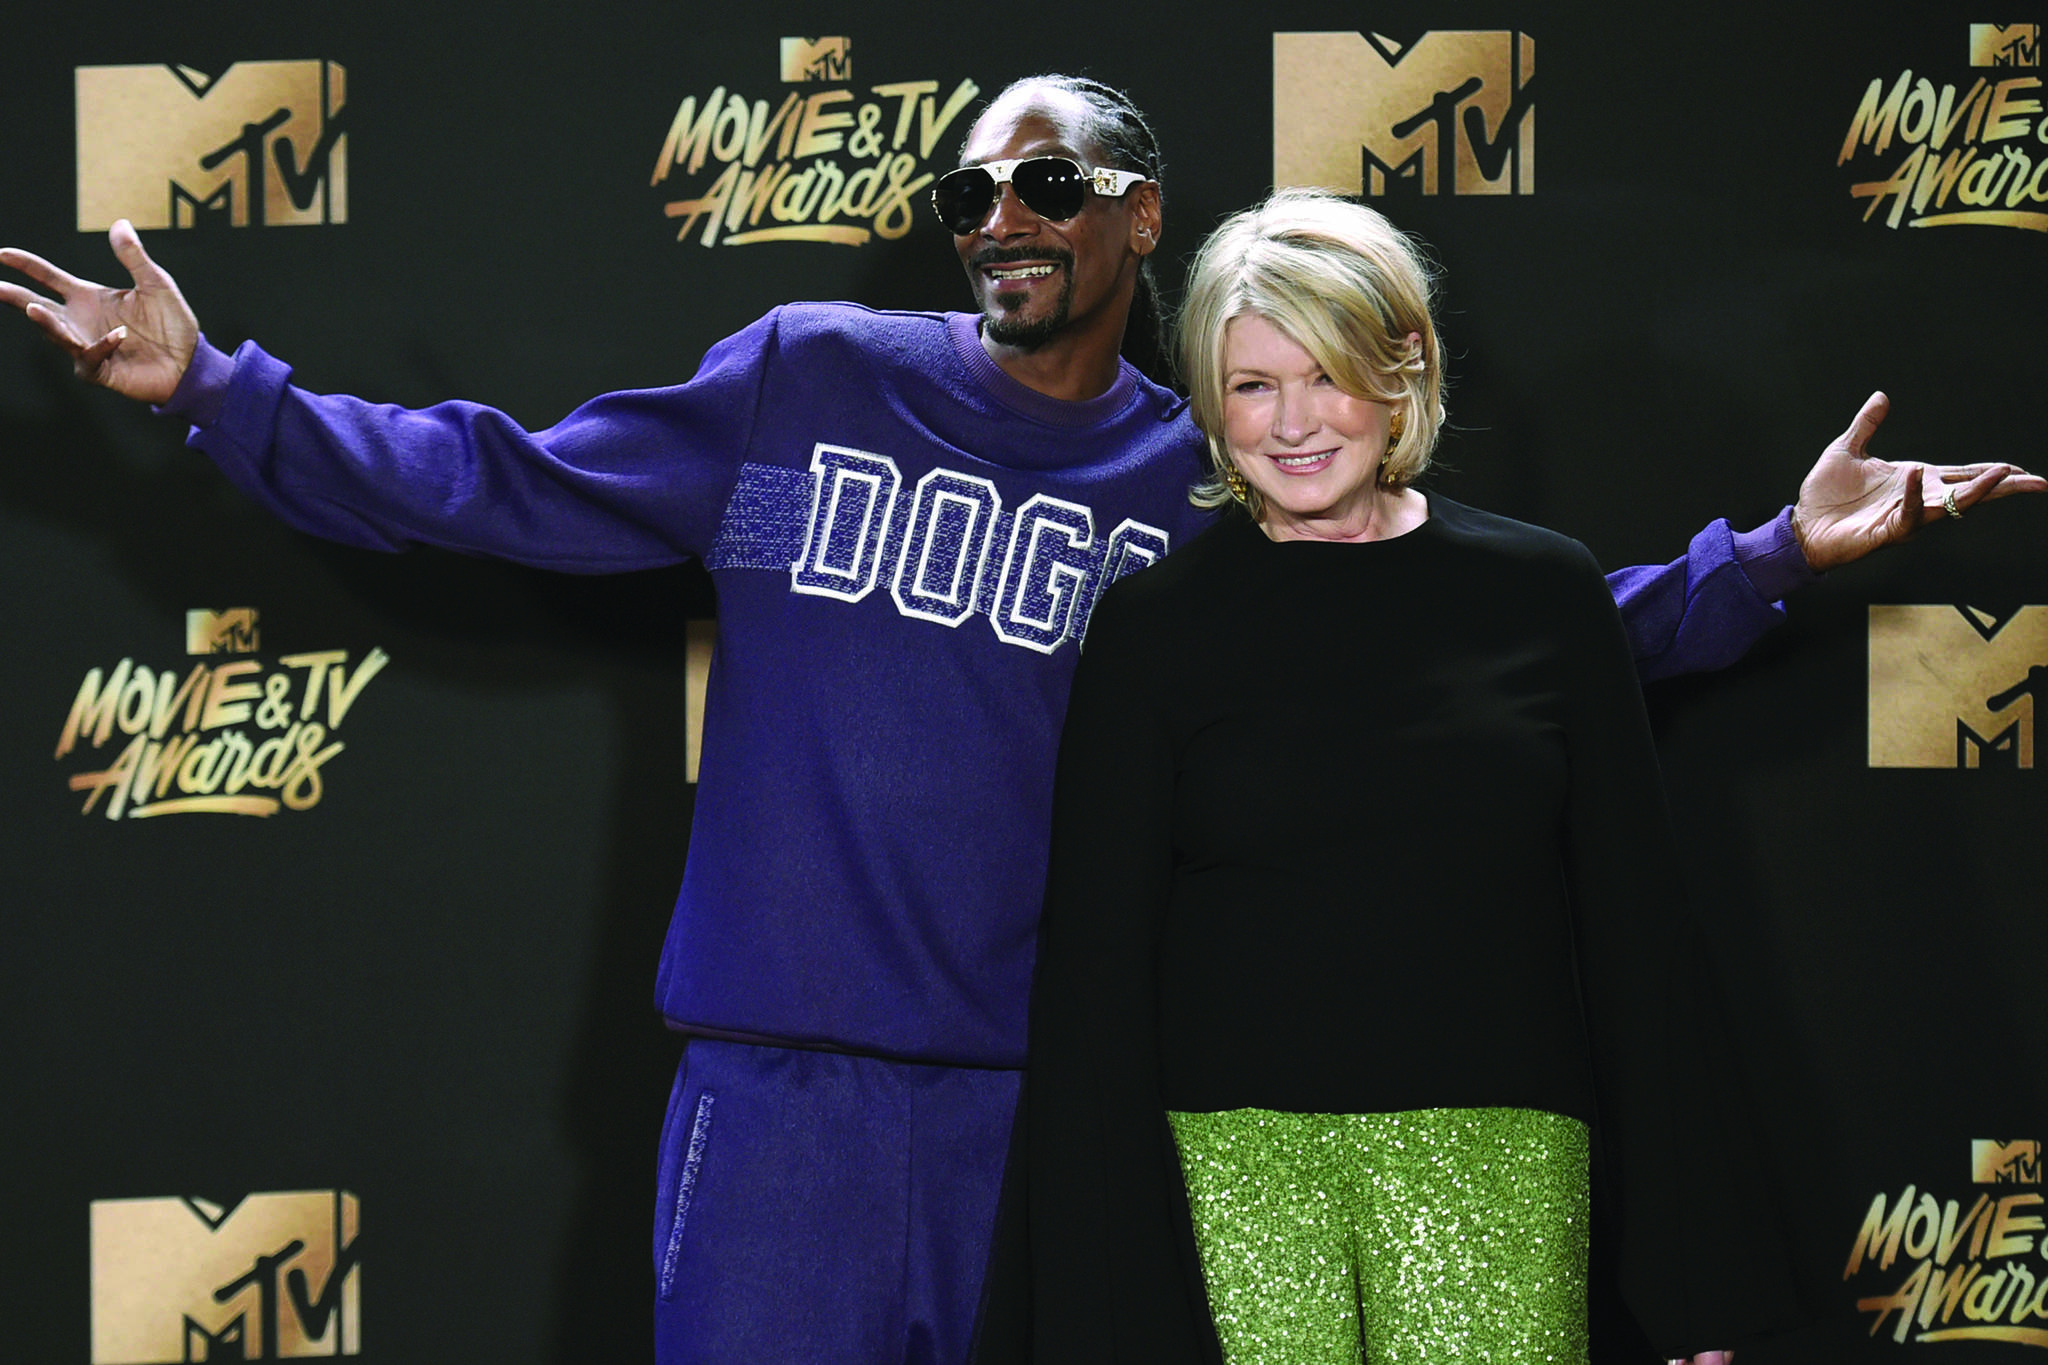 FILE - In this May 7, 2017 file photo, Snoop Dogg, left, and Martha Stewart pose in the press room at the MTV Movie and TV Awards in Los Angeles. The domestic diva said Tuesday, Sept. 24, 2019 that the CBD line of products she is developing with Canopy Growth will likely hit the market in the middle of next year. (Photo by Richard Shotwell/Invision/AP, File)